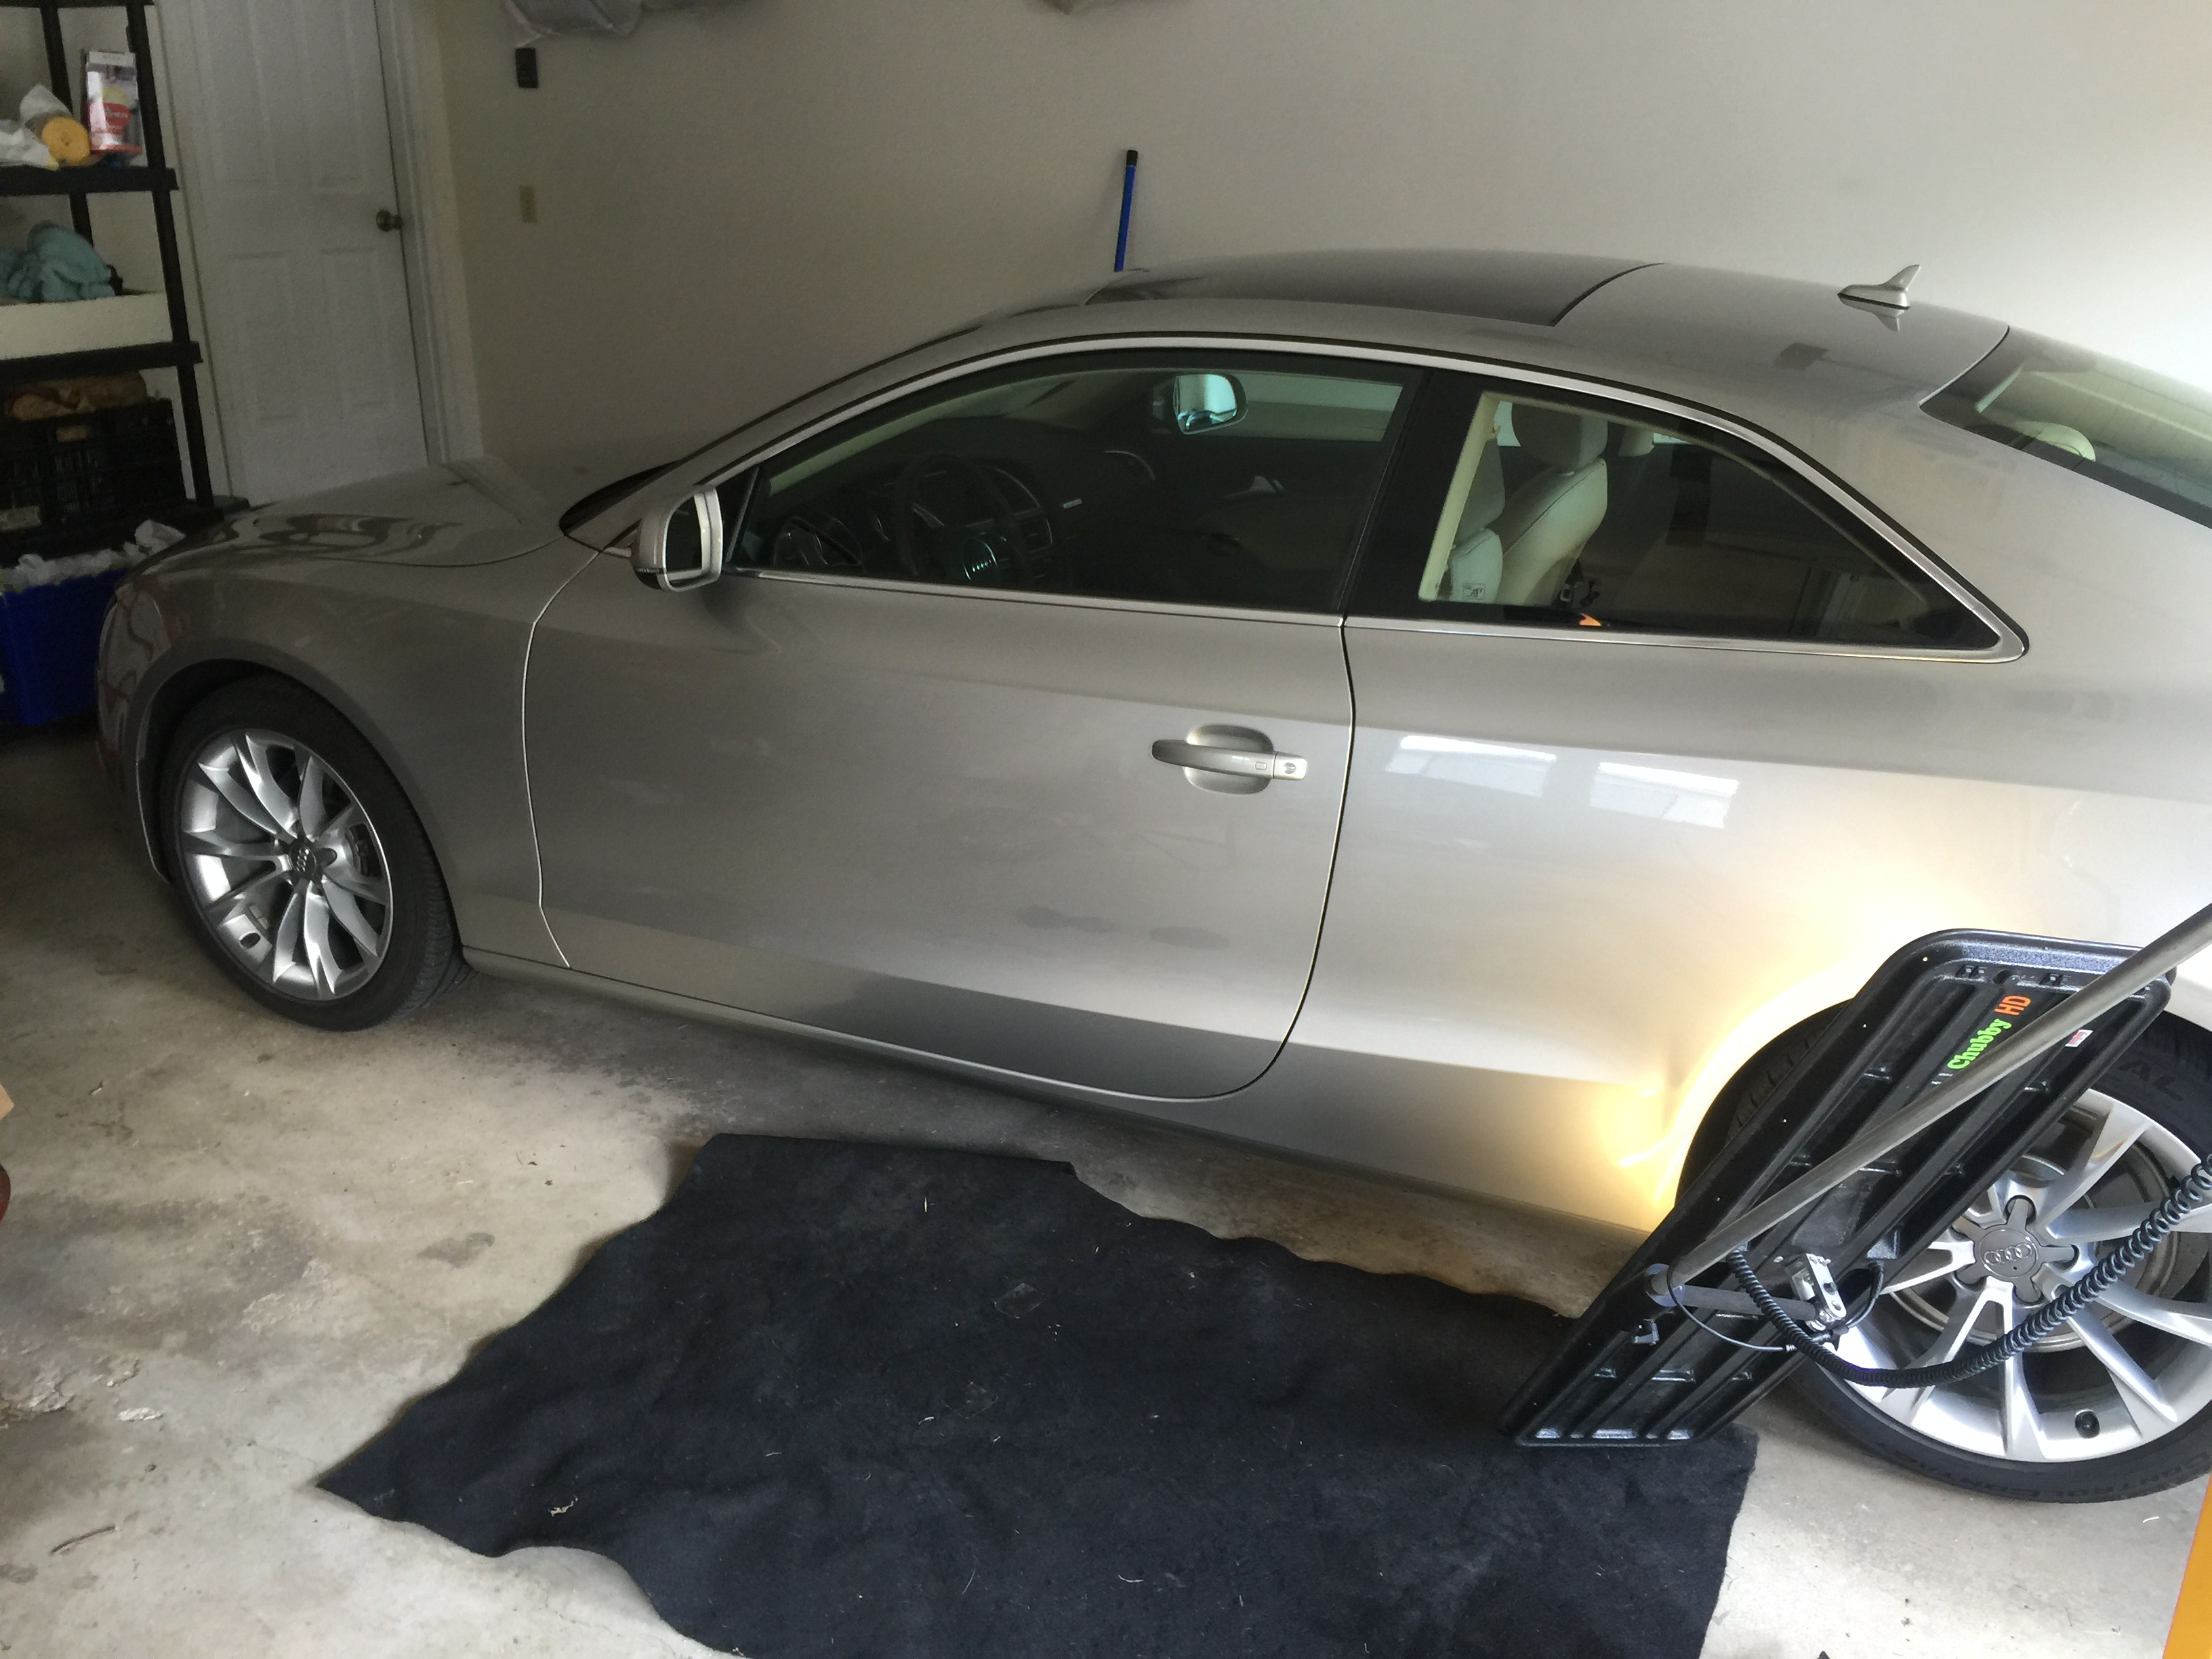 2013 Audi A5 Dent Repair on drivers rear quarter, paintless dent removal Springfield, IL http://217dent.com